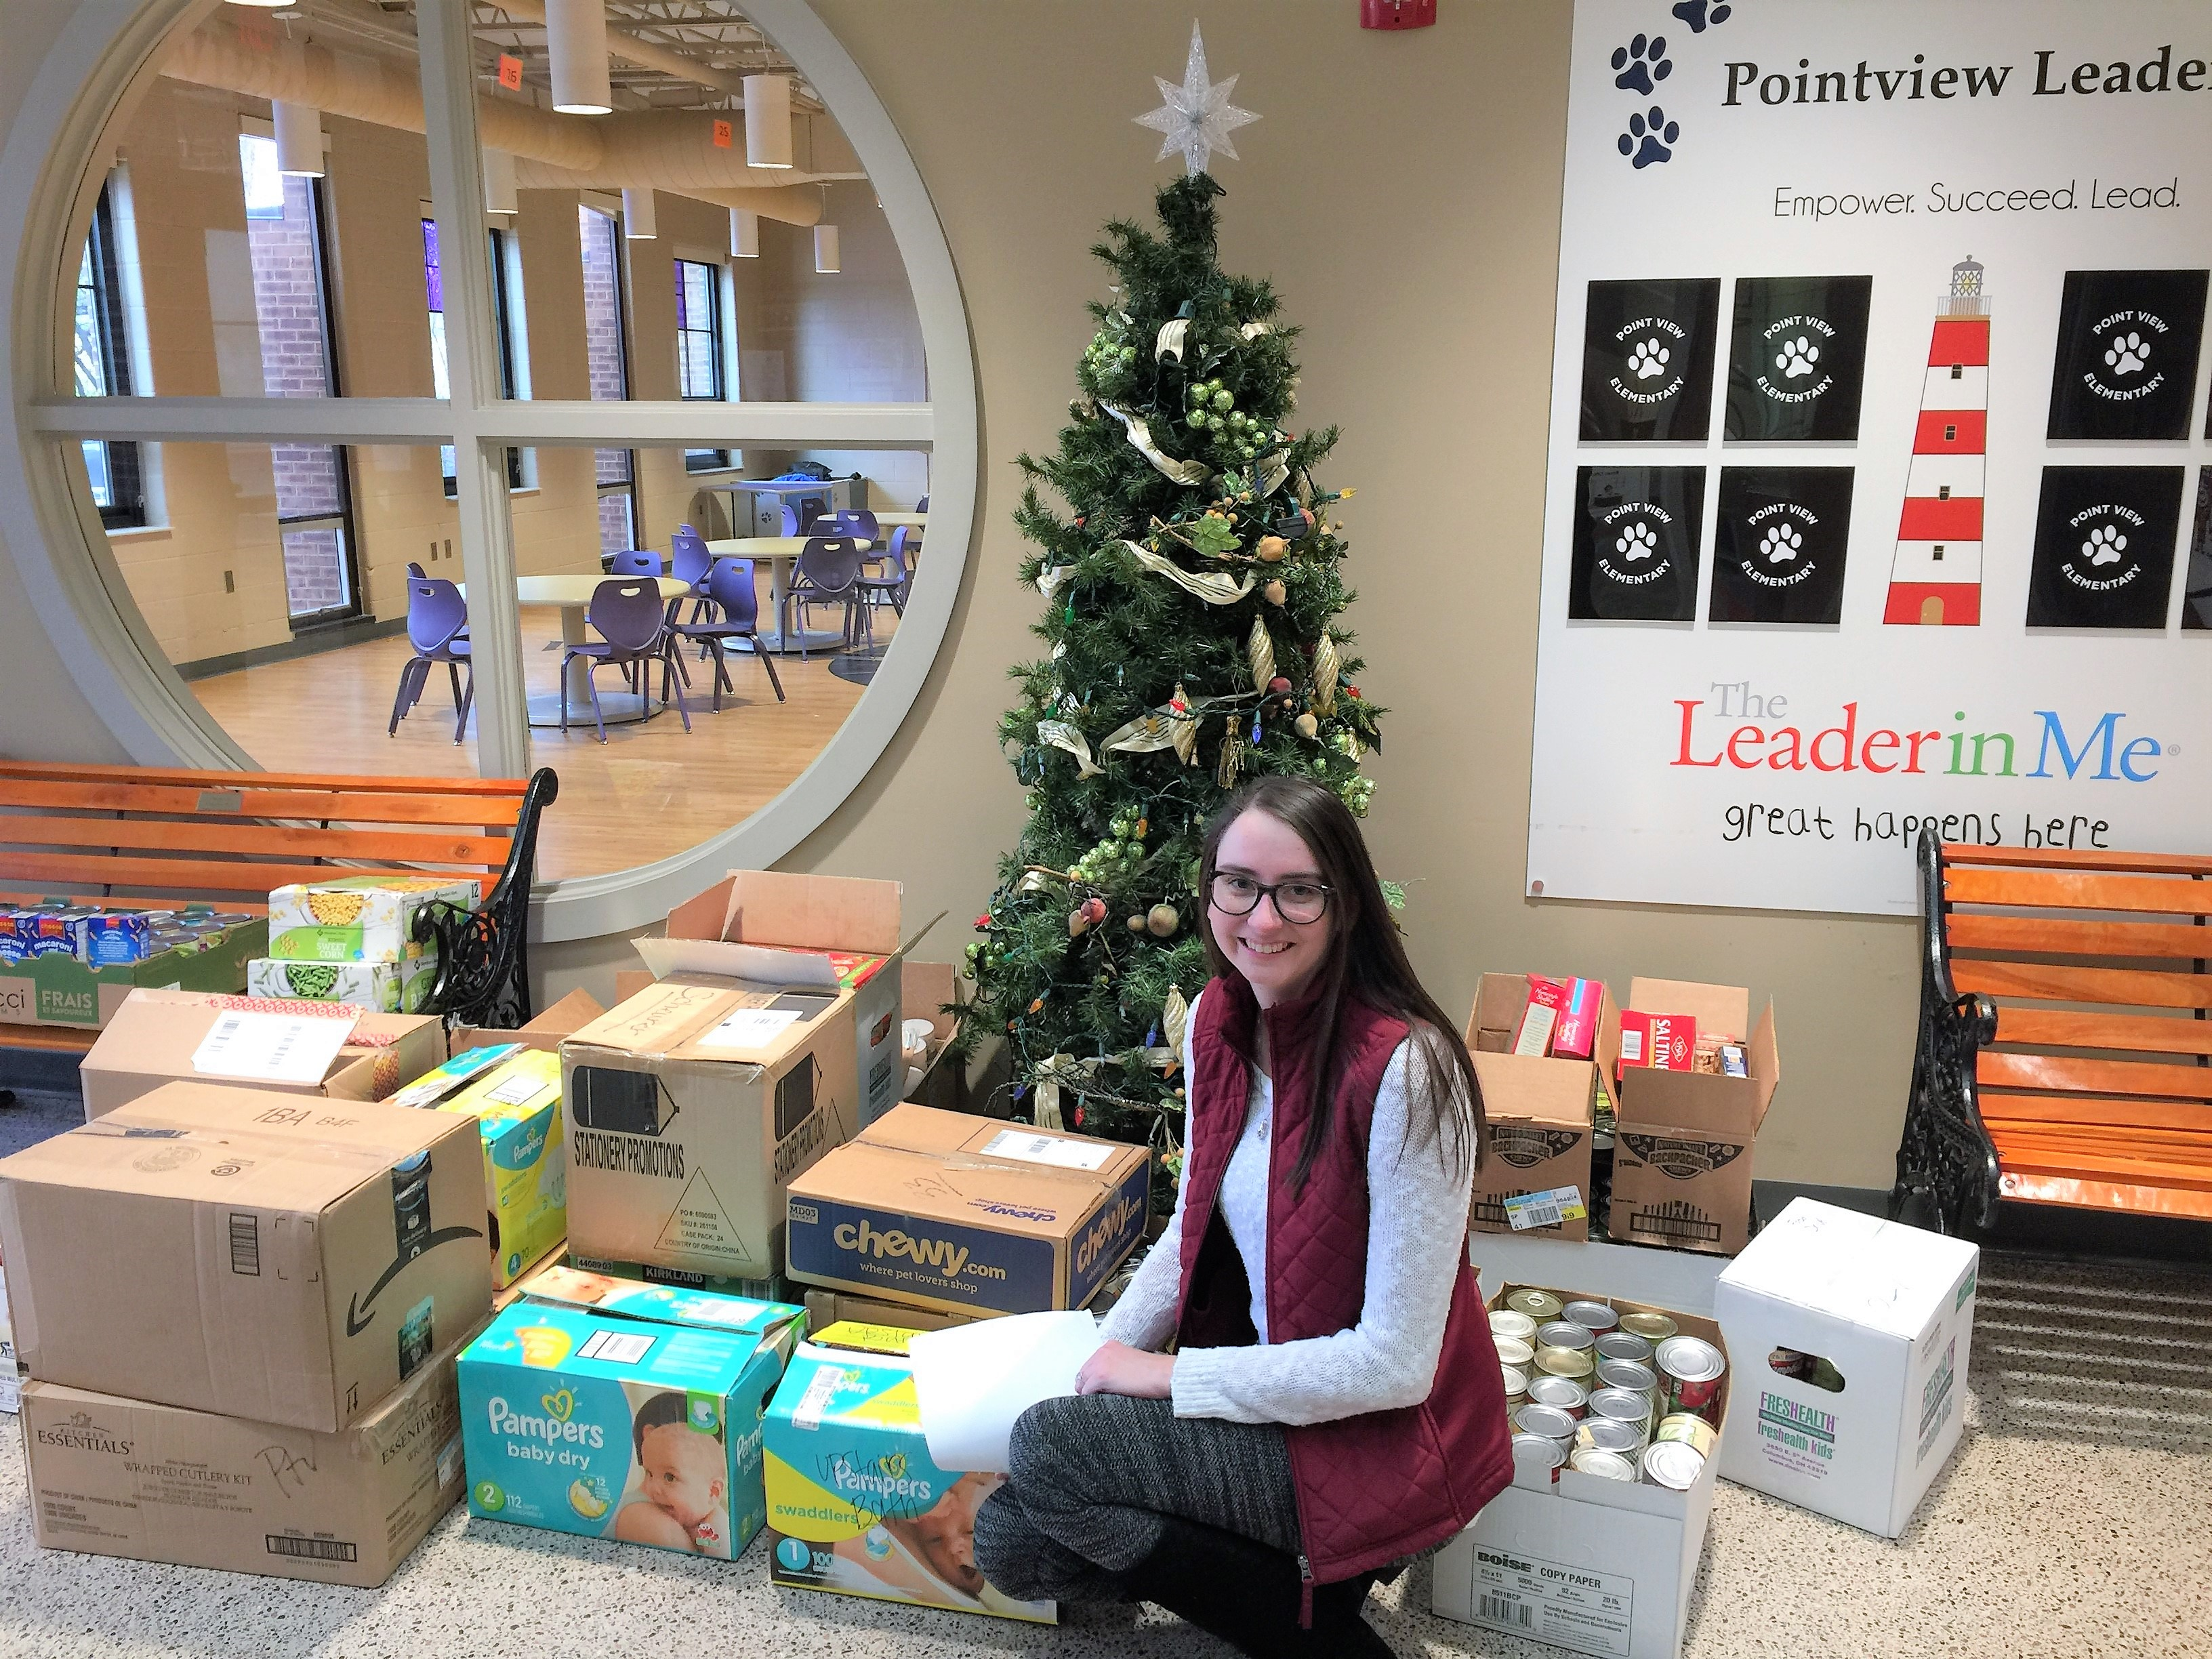 Elyson Barto in front of donations to Pointview's Caring & Sharing drive